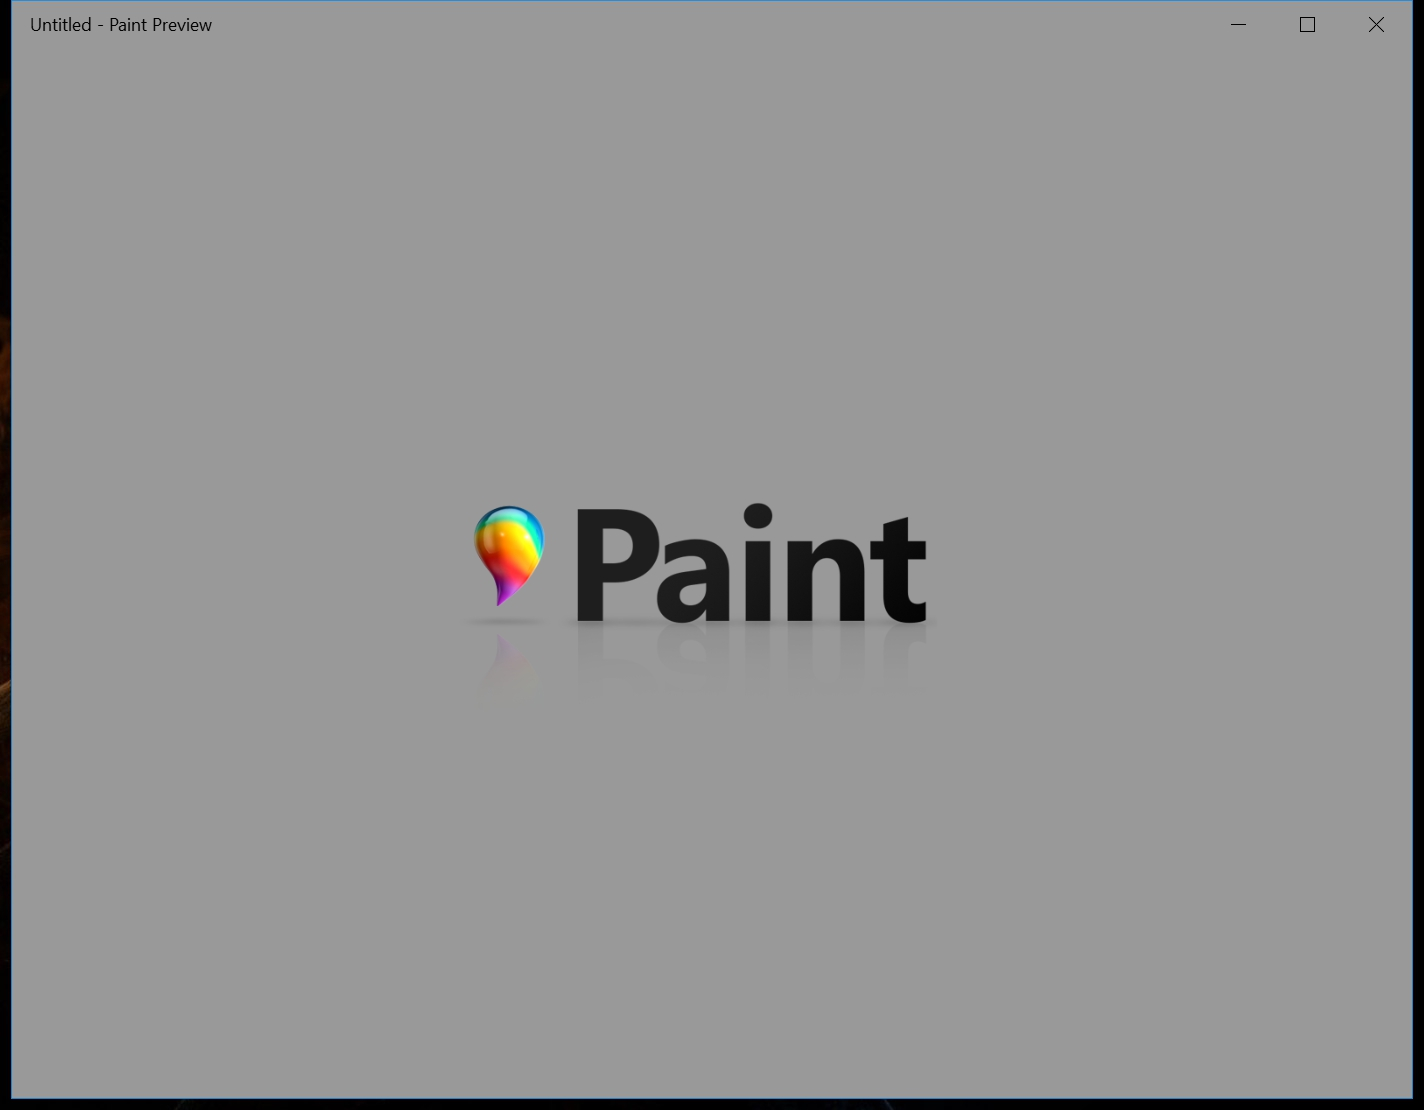 paint_preview_windows_10_new